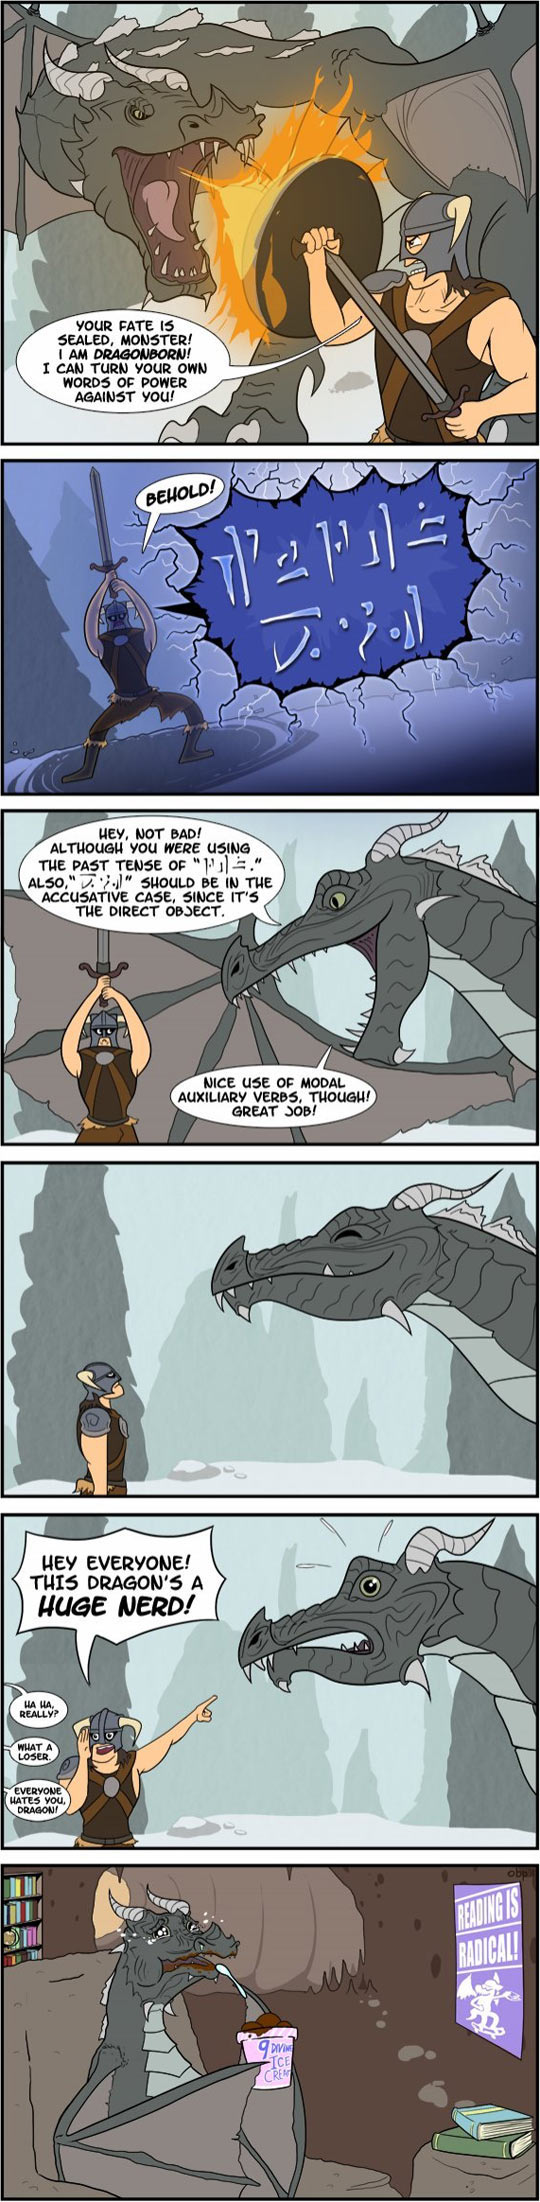 How To Defeat A Dragon